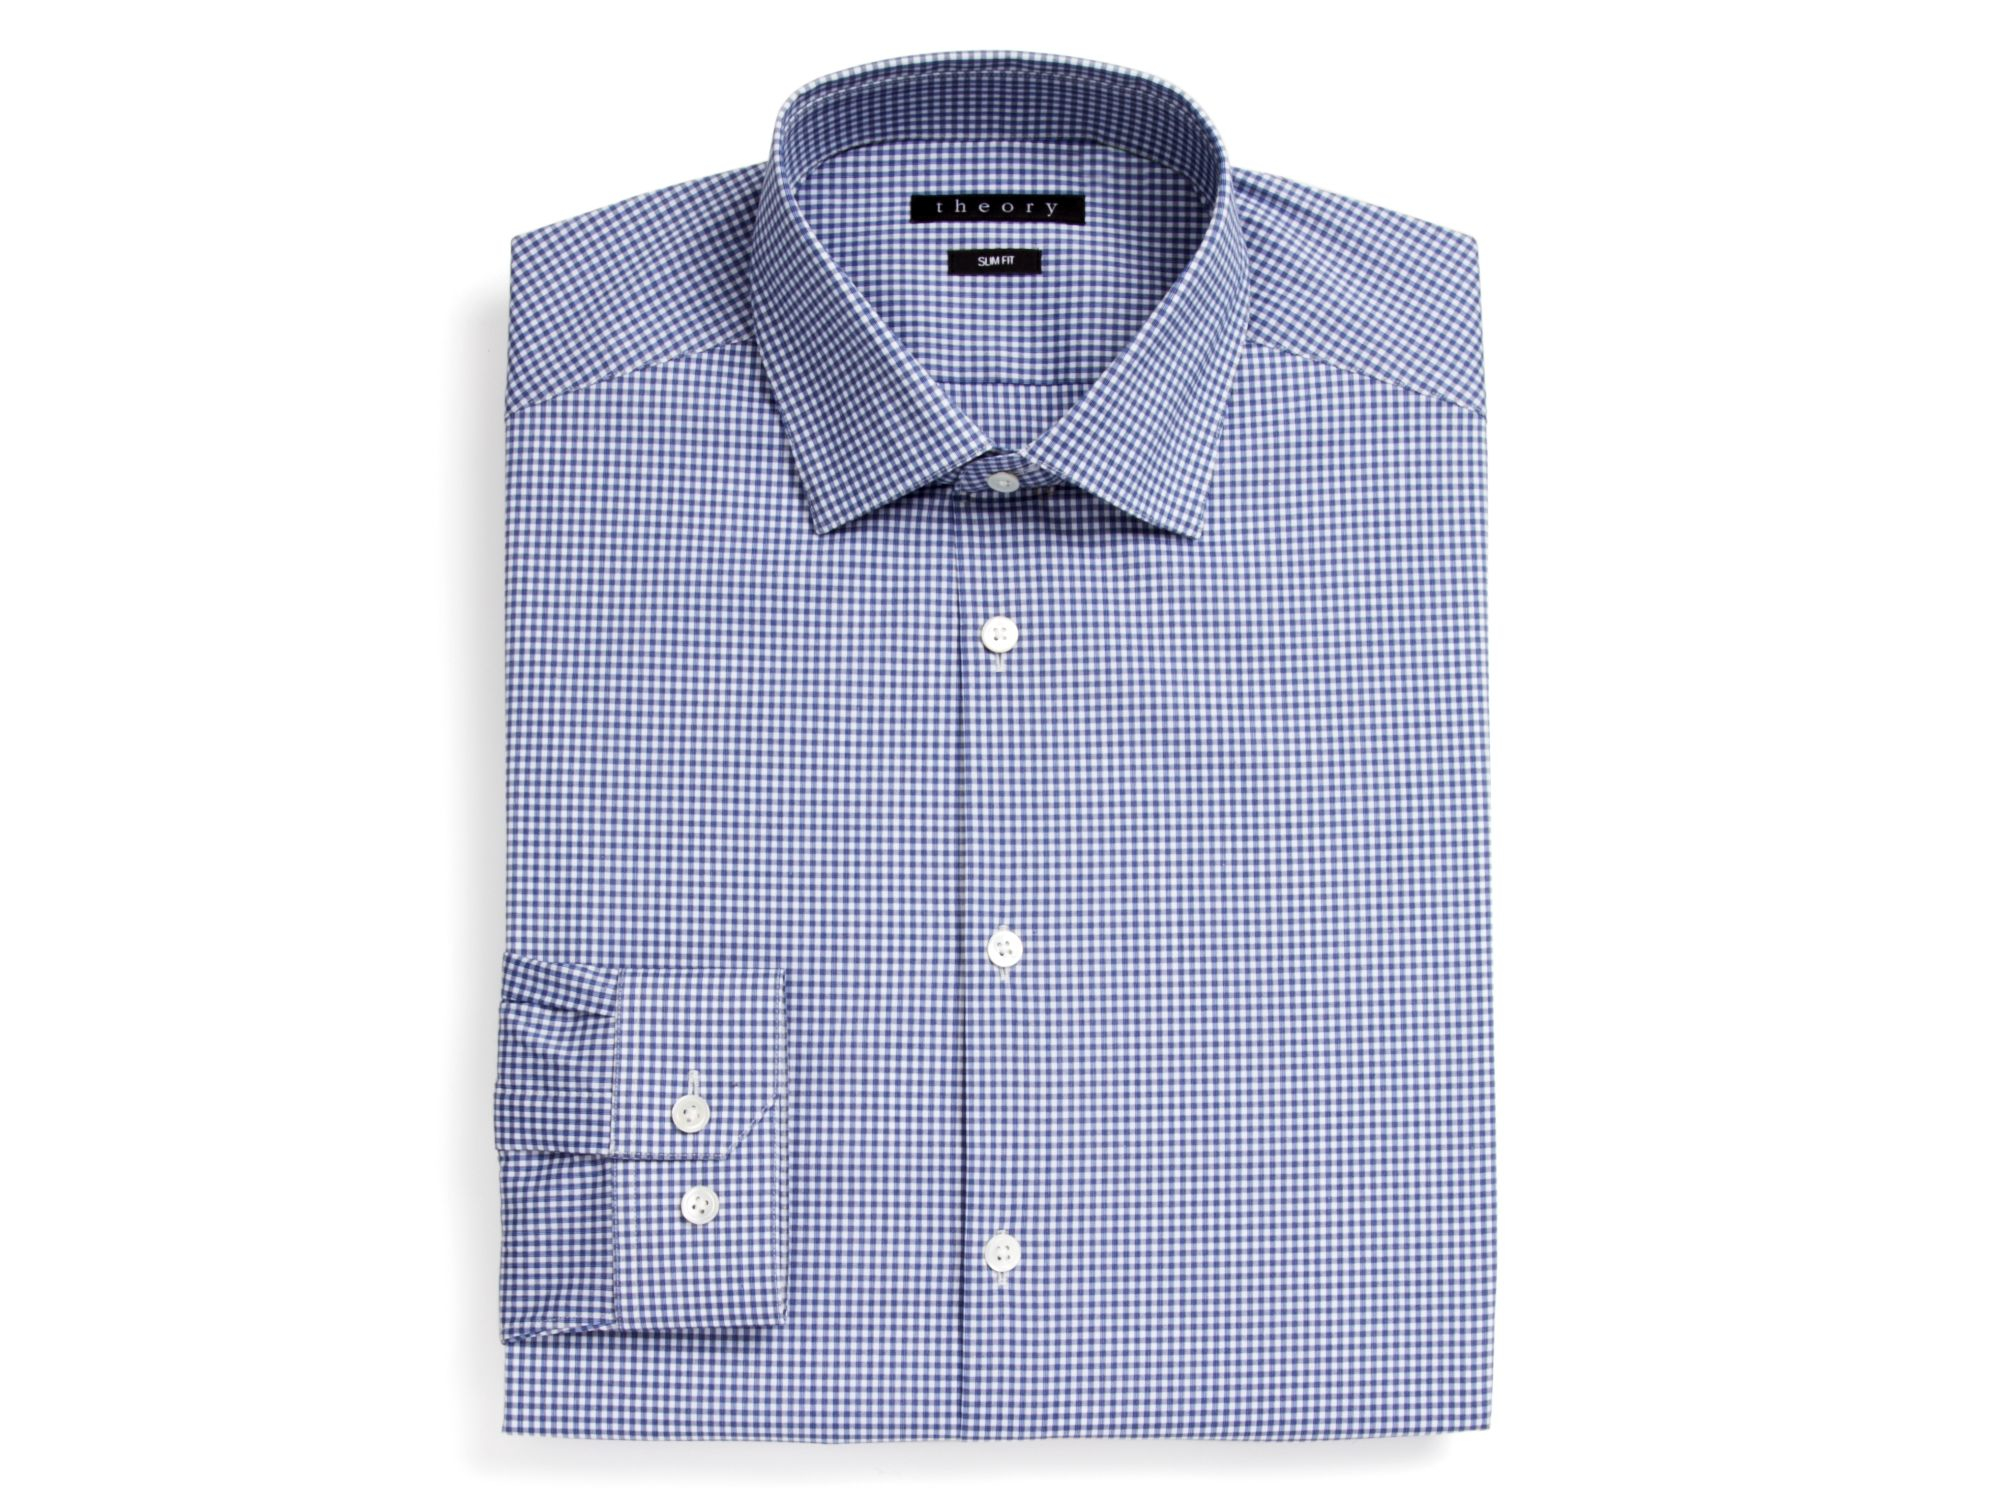 Lyst theory sheldon gingham check dress shirt slim fit for Blue check dress shirt